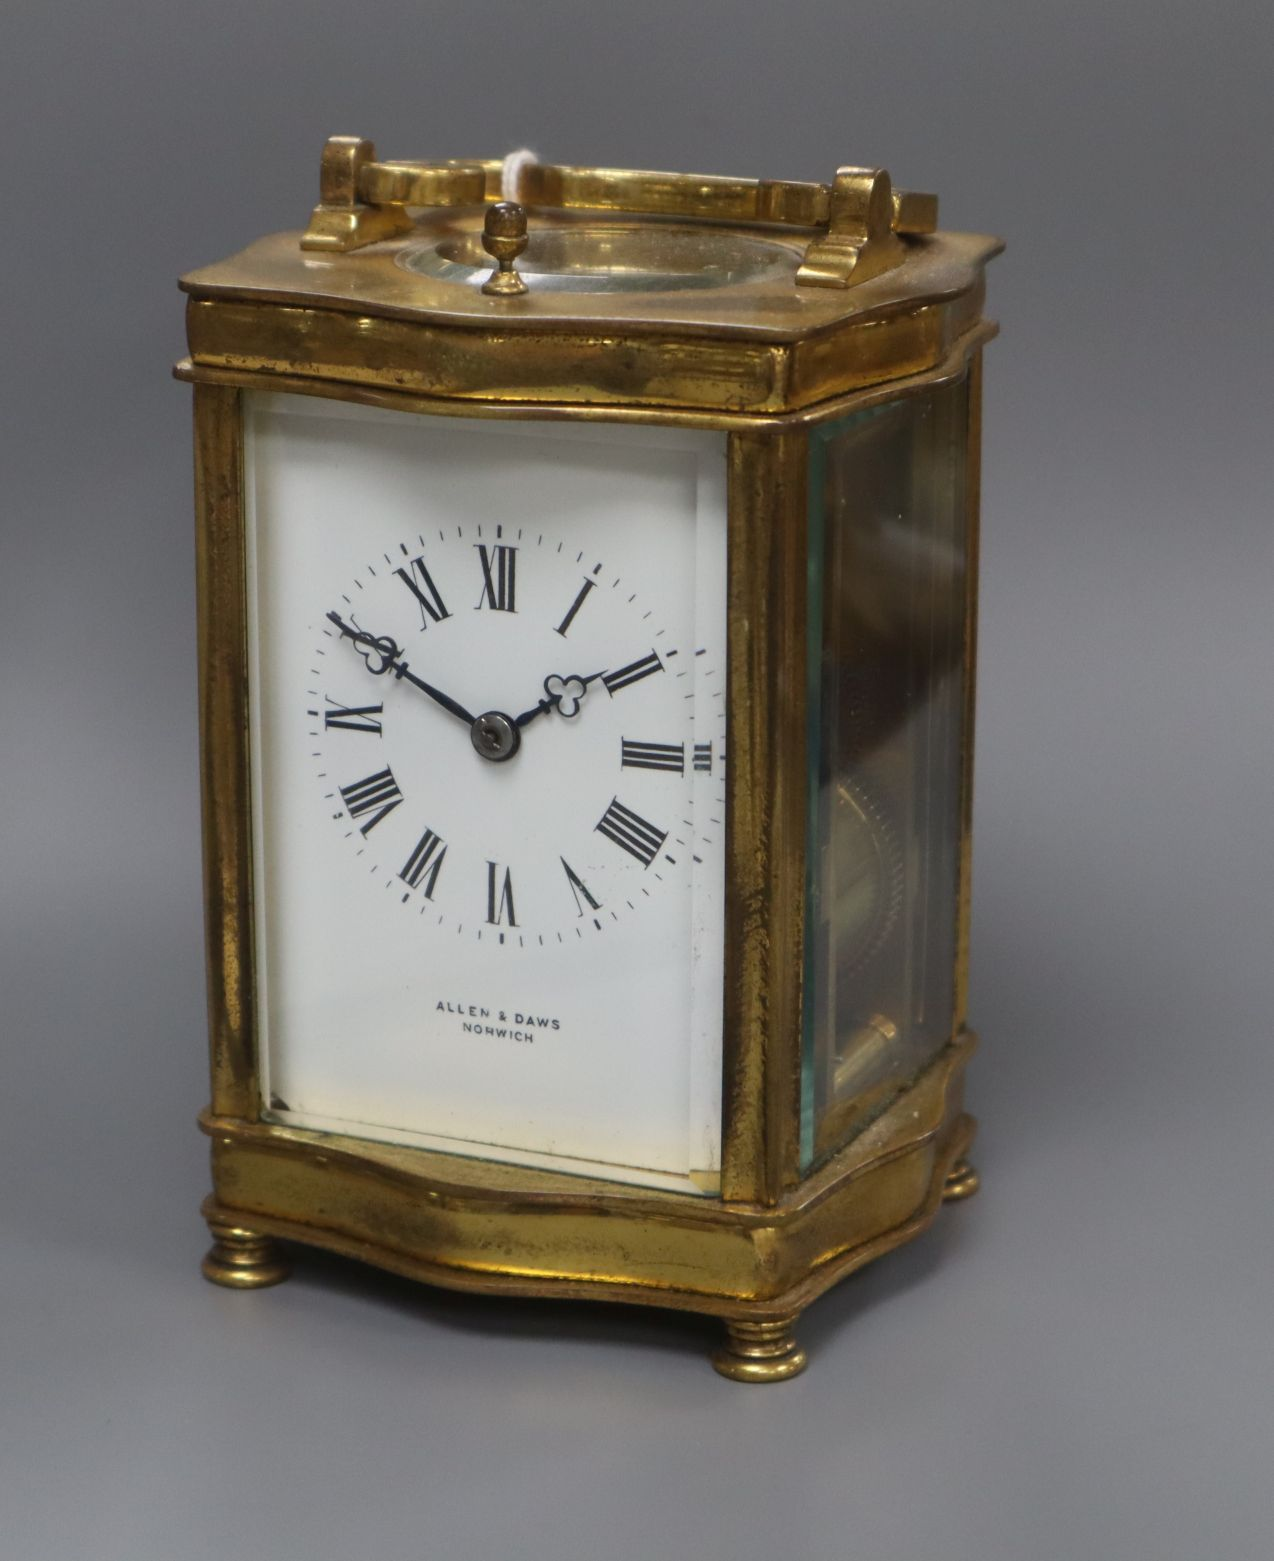 Lot 330 - A late 19th century French brass cased eight day repeating carriage clock, retailed by Allen and